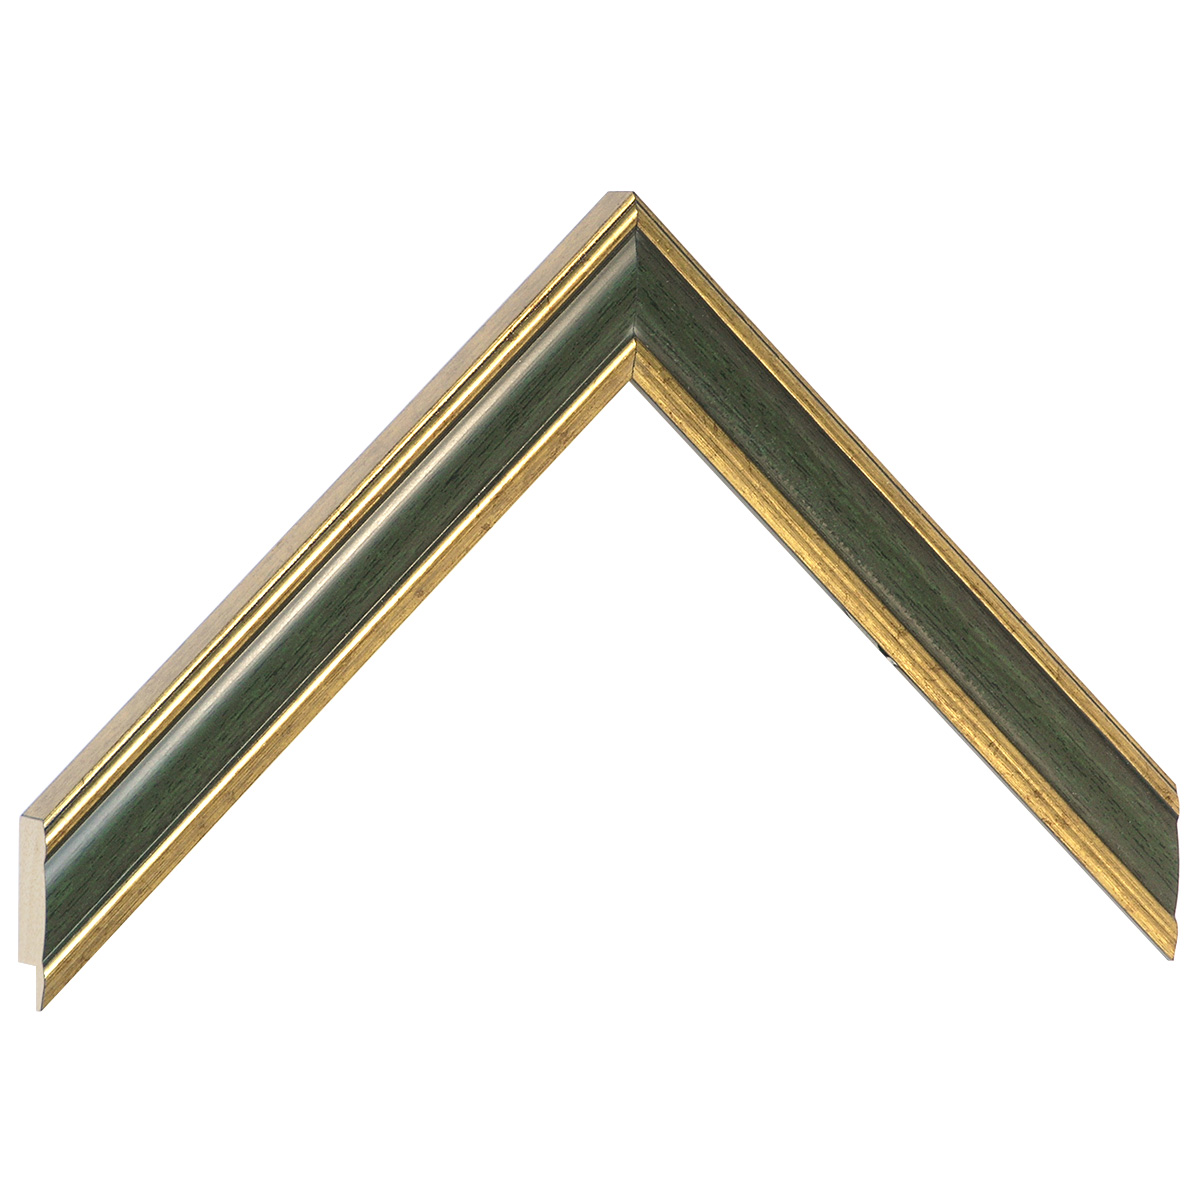 Moulding ayous - Width 23mm - Gold with olive green band